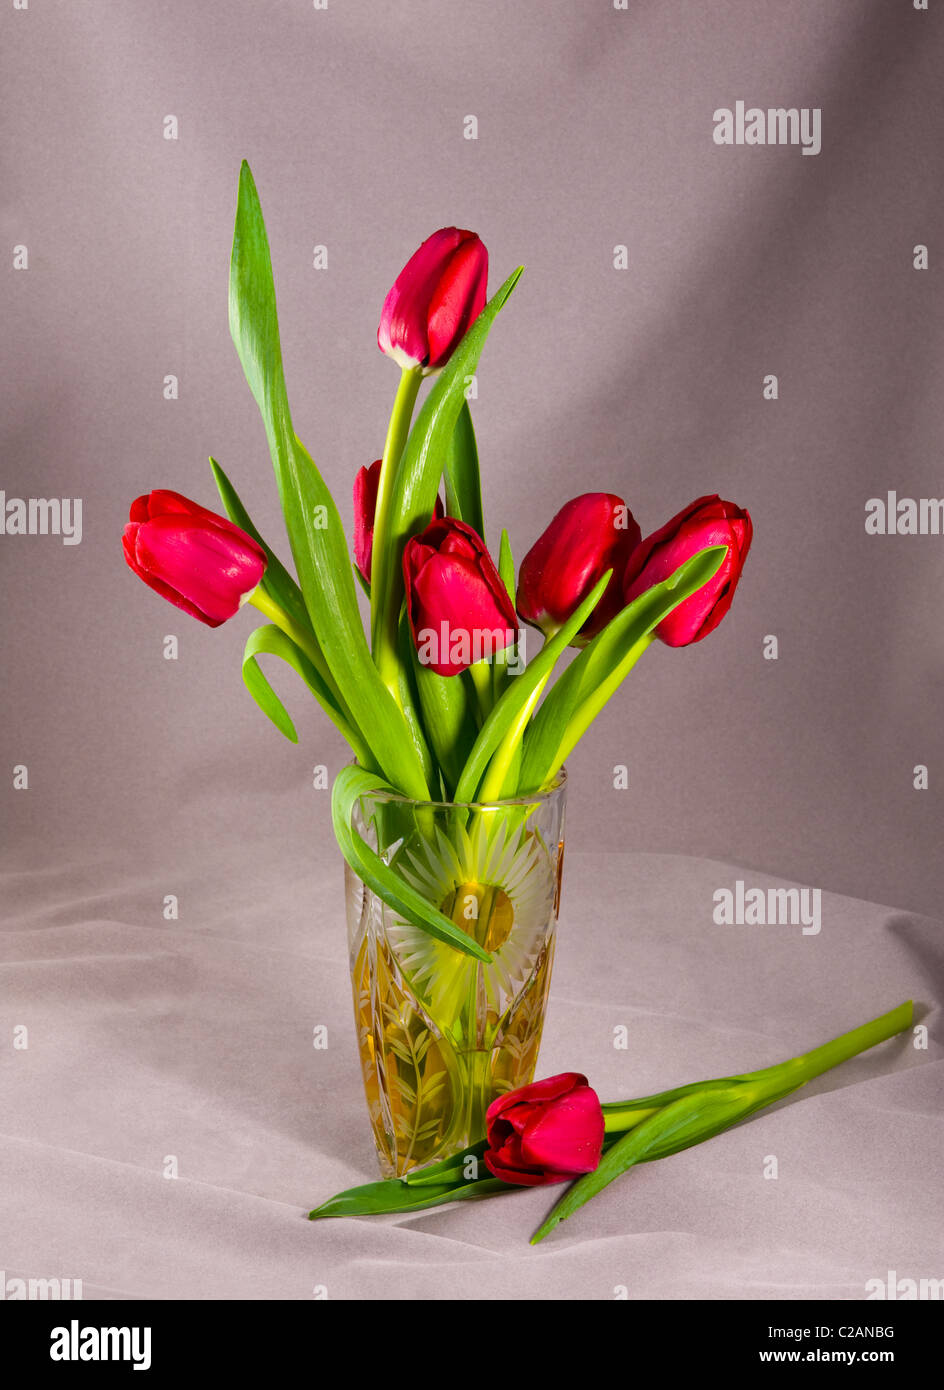 Red tulips in crystal glass vase dew drops mist water on flowers red tulips in crystal glass vase dew drops mist water on flowers composition arrangement still life table top set up cut out reviewsmspy